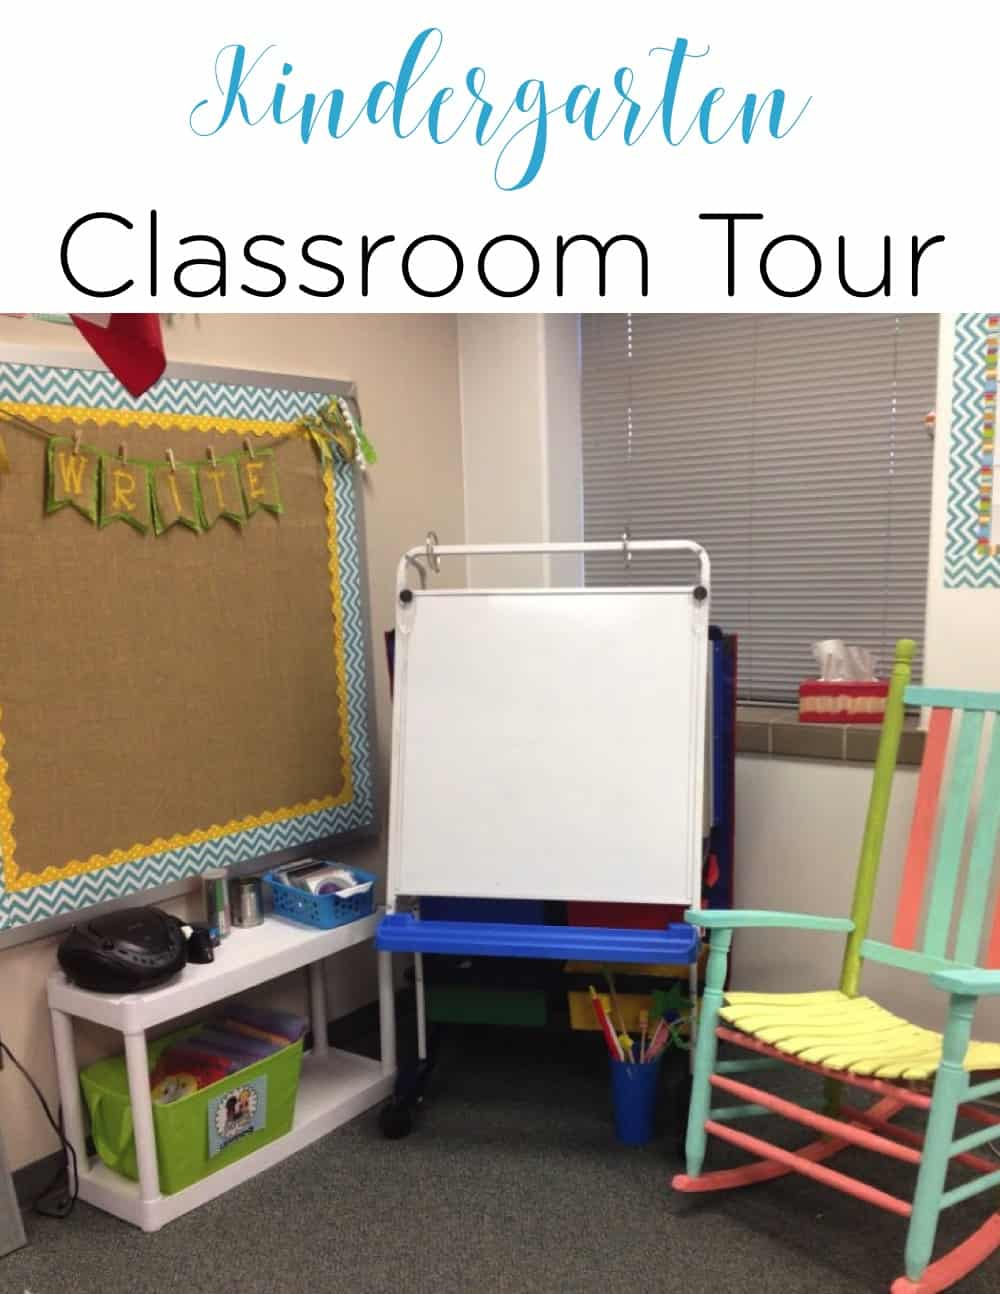 This kindergarten classroom is simple, not over decorated, and a crisp, clean space for students to enjoy learning!